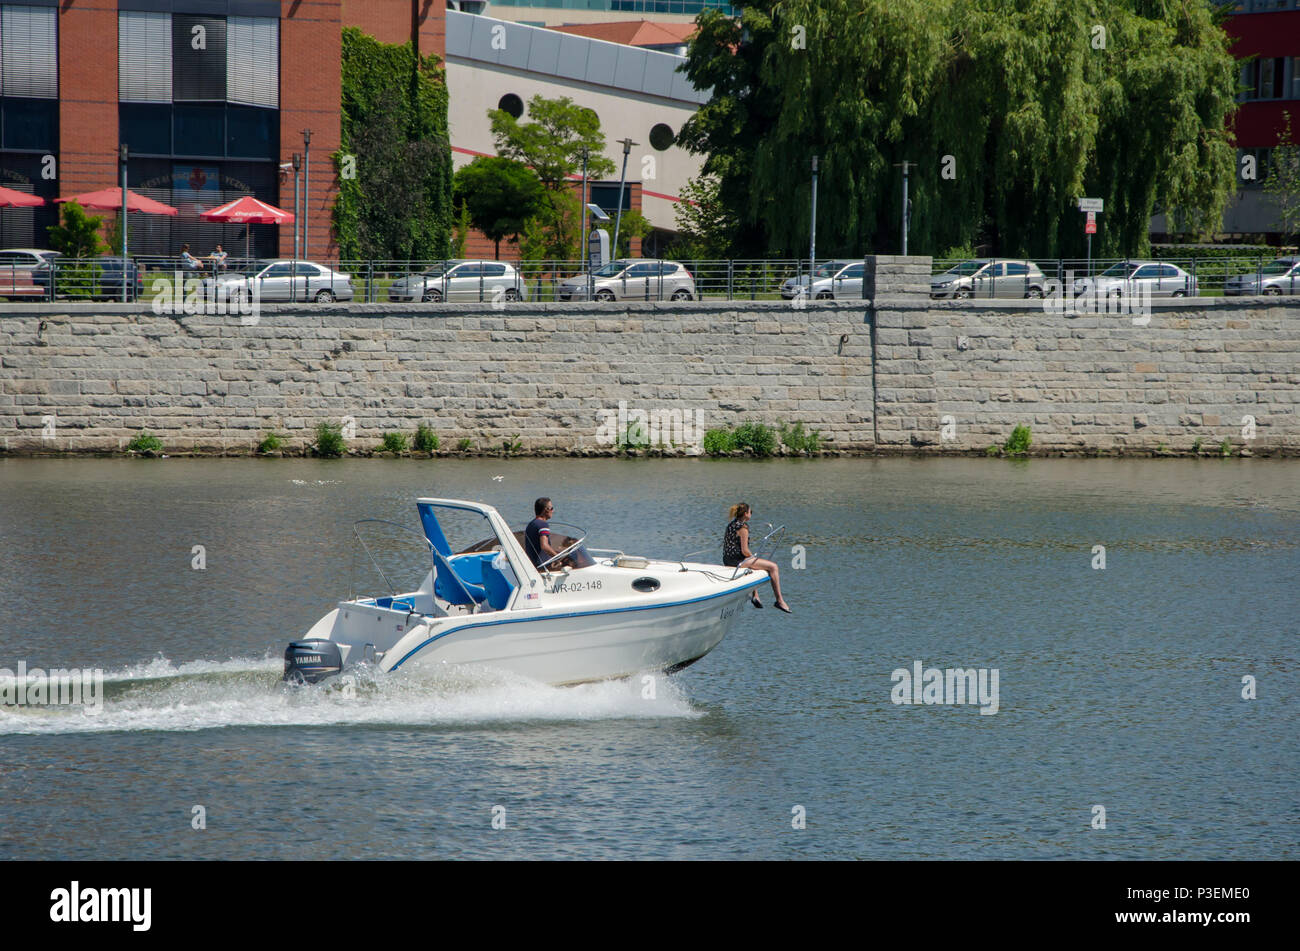 A couple in a motor boat in the river. Woman sit on rostrum of a boat. Poland, Wroclaw - Stock Image